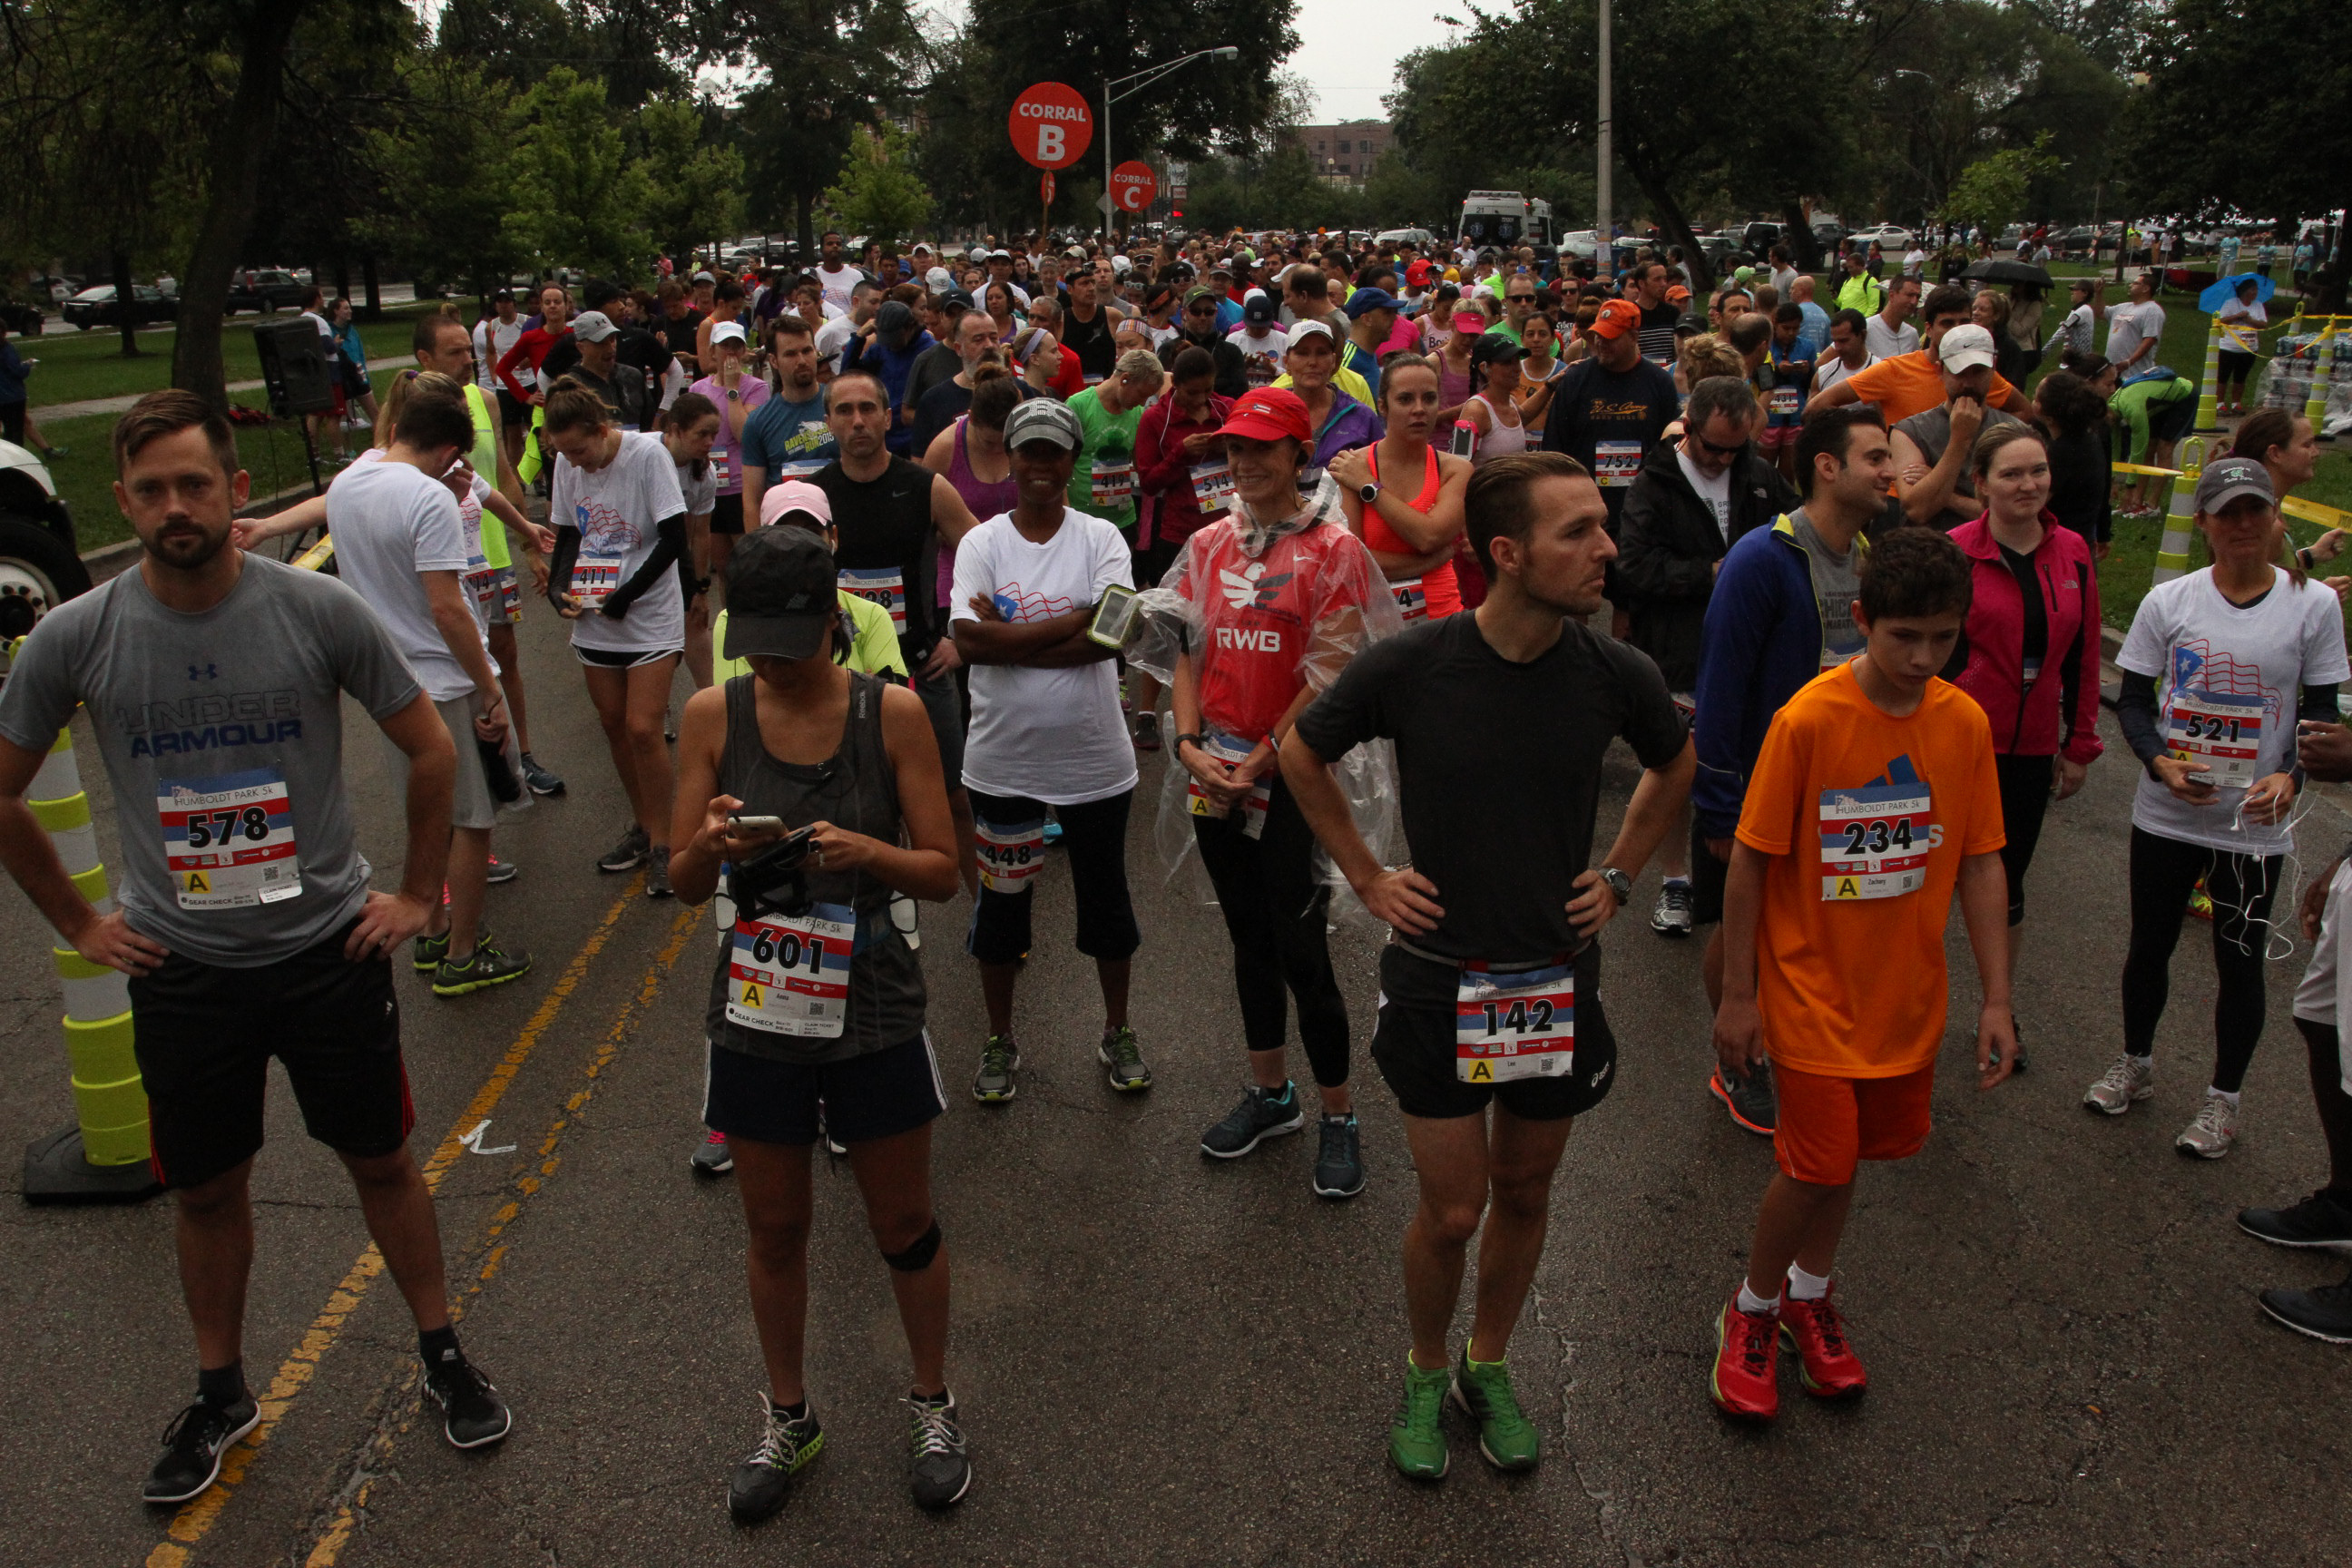 Bucktown 5k Race Day Runners